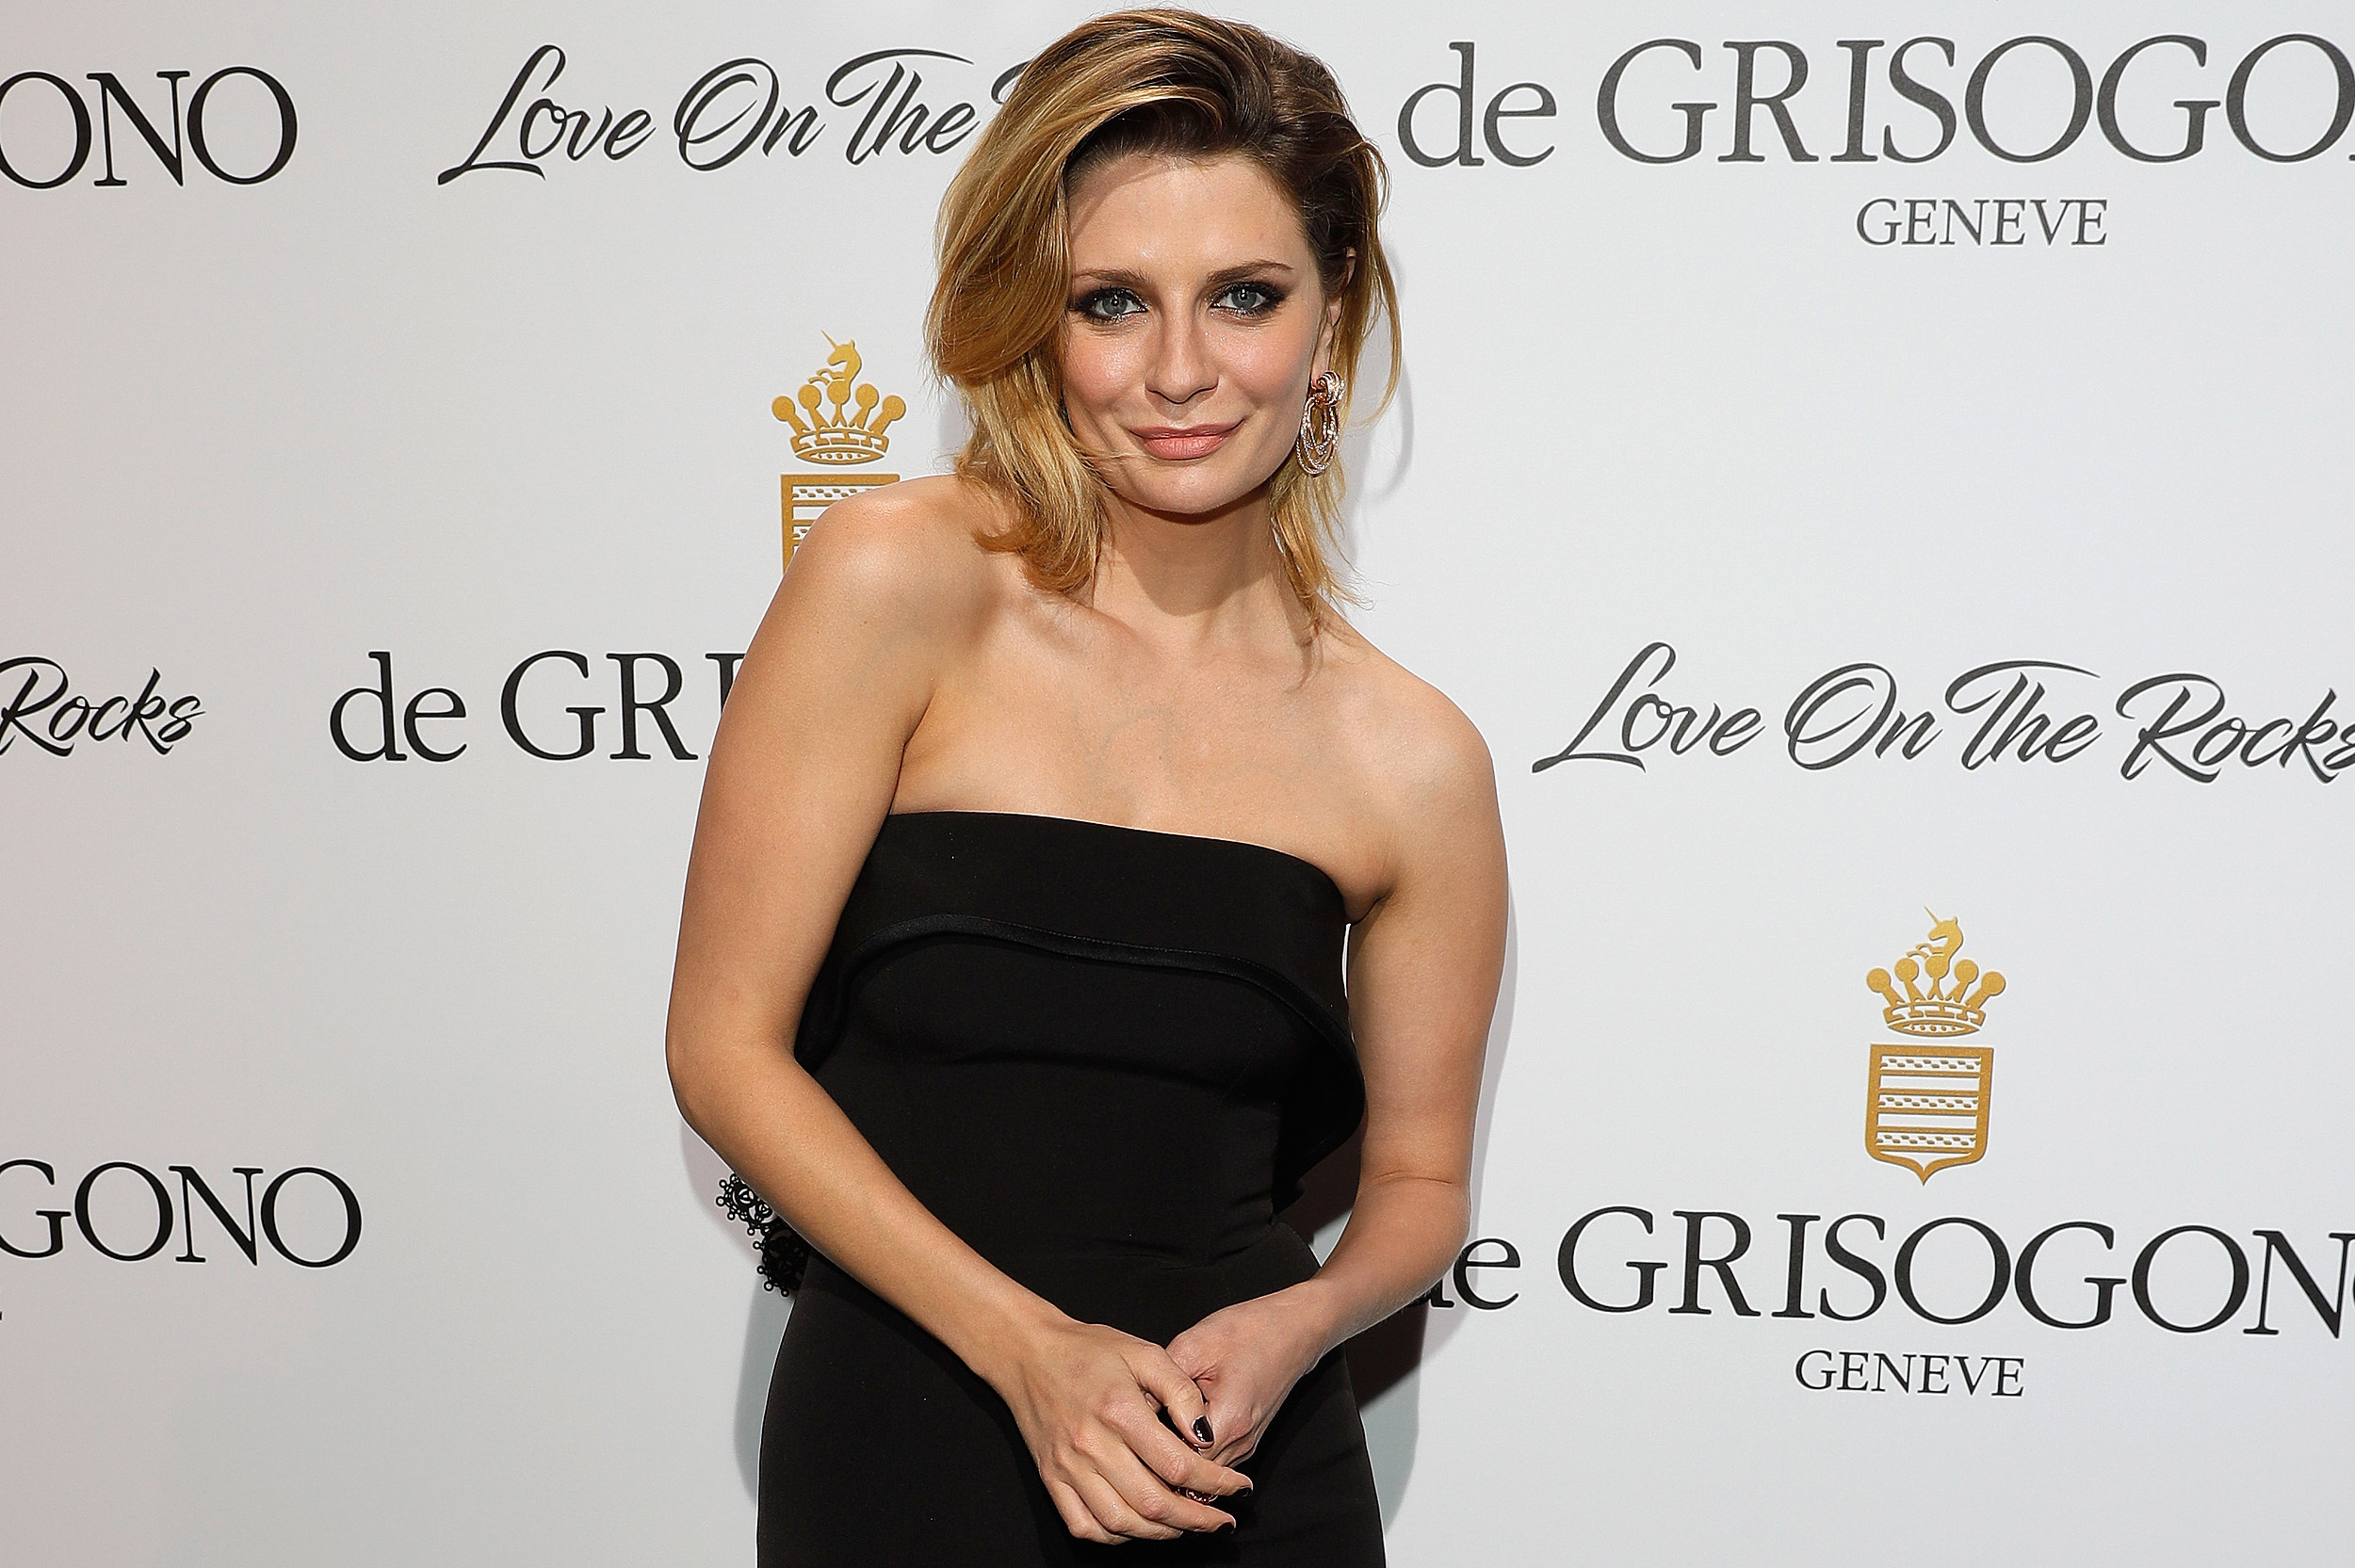 Mischa Barton Shares First Photo With 'The Hills' Co-Stars